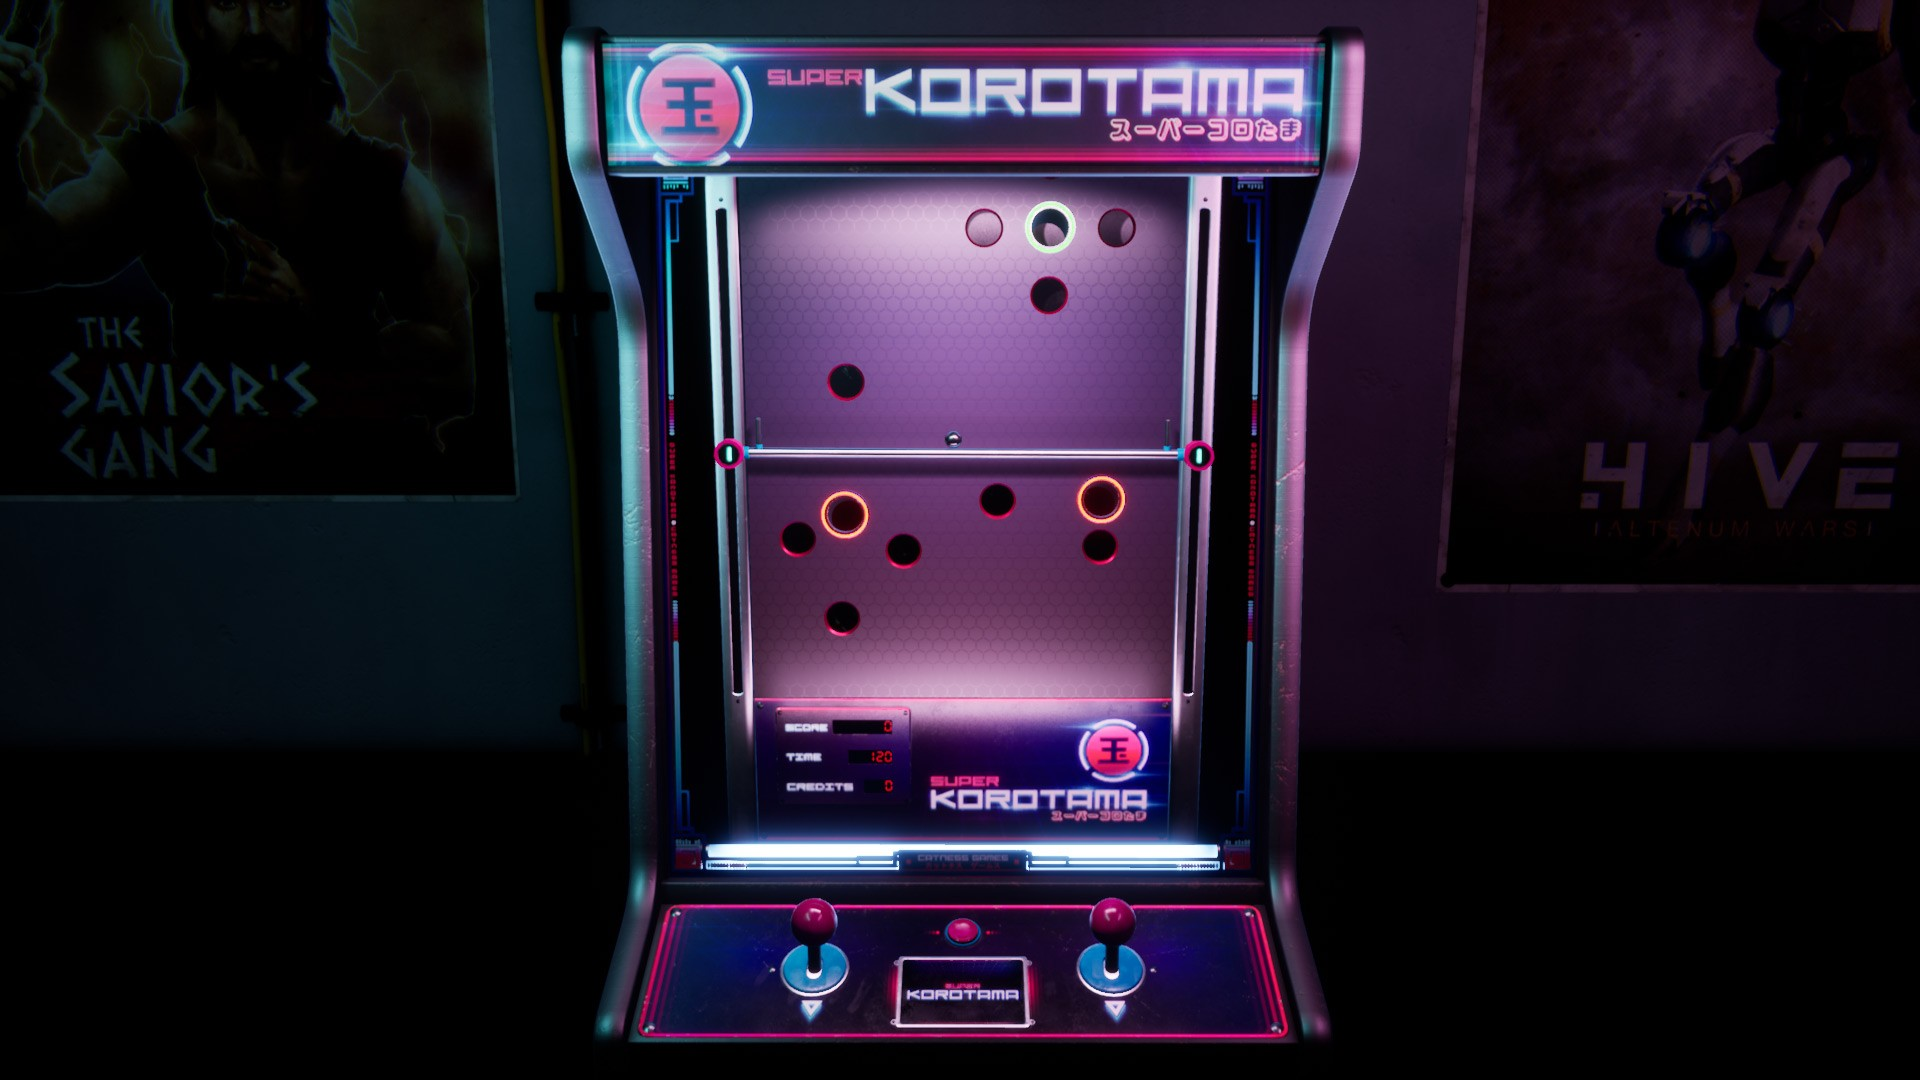 Action, arcade, casual, Catness Game Studios, indie, PS4, PS4 Review, Puzzle, Rating 7/10, simulation, Super Korotama, Super Korotama Review